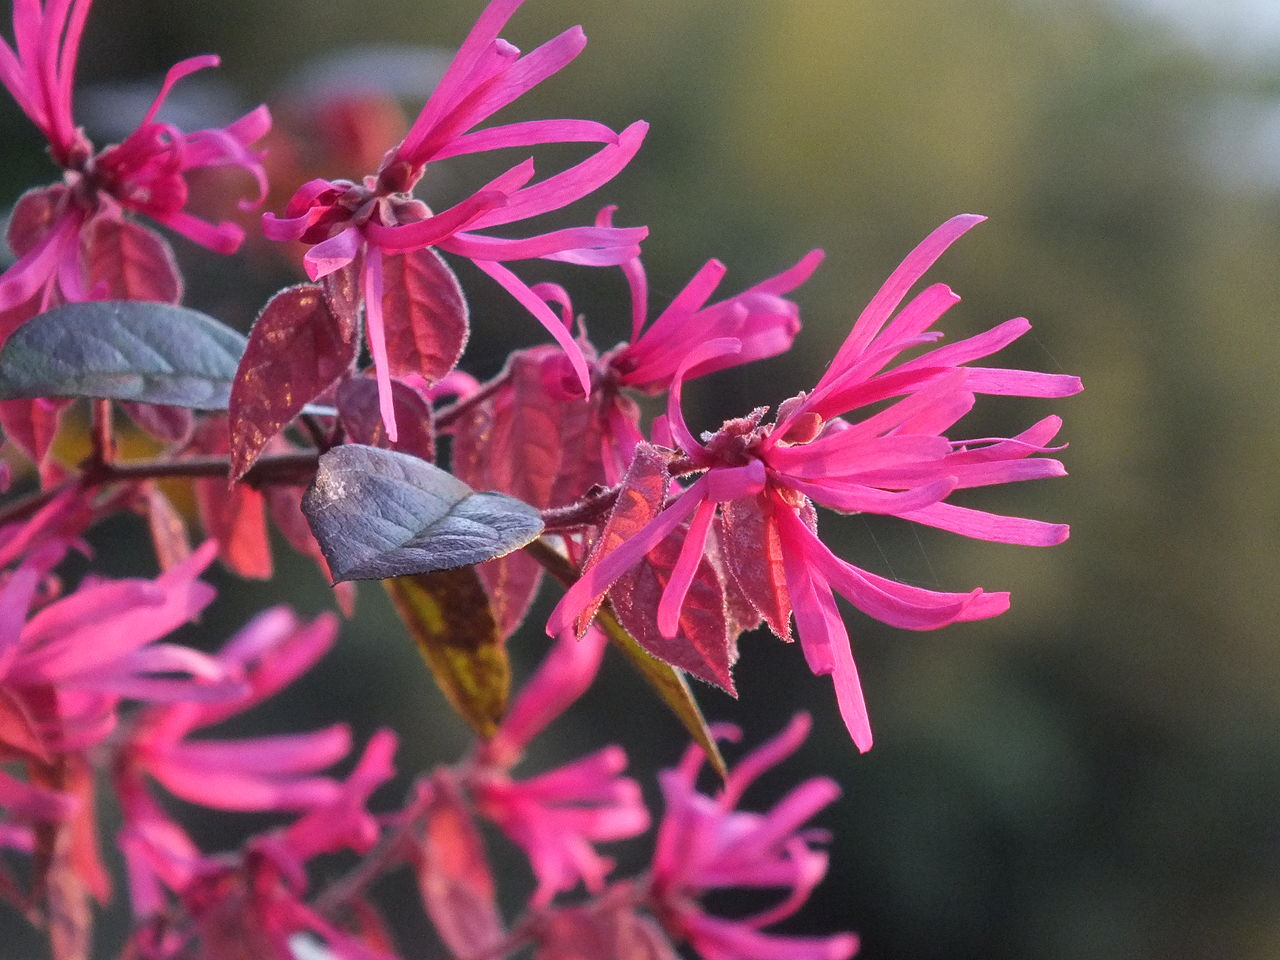 About Chinese Fringe Plants Tips For Growing Loropetalum Shrubs